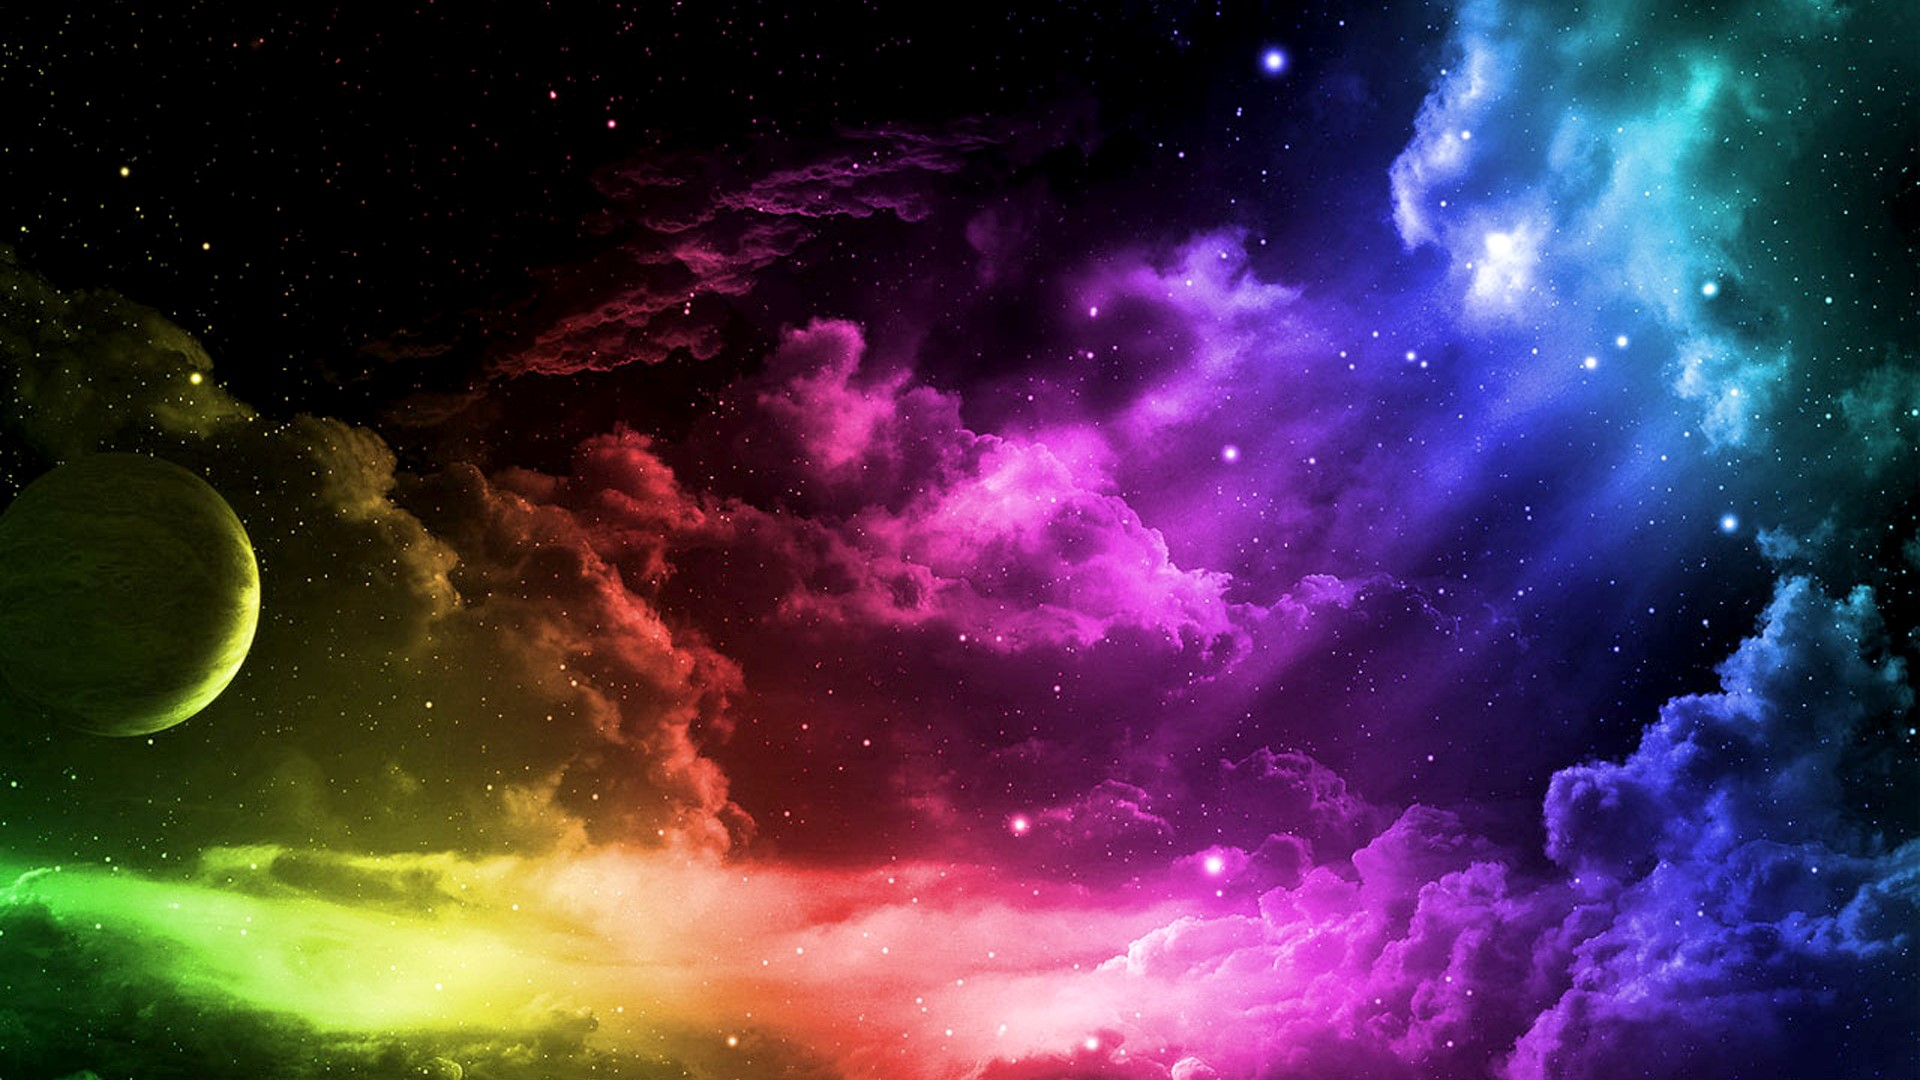 Wallpaper A universe of colors with clouds